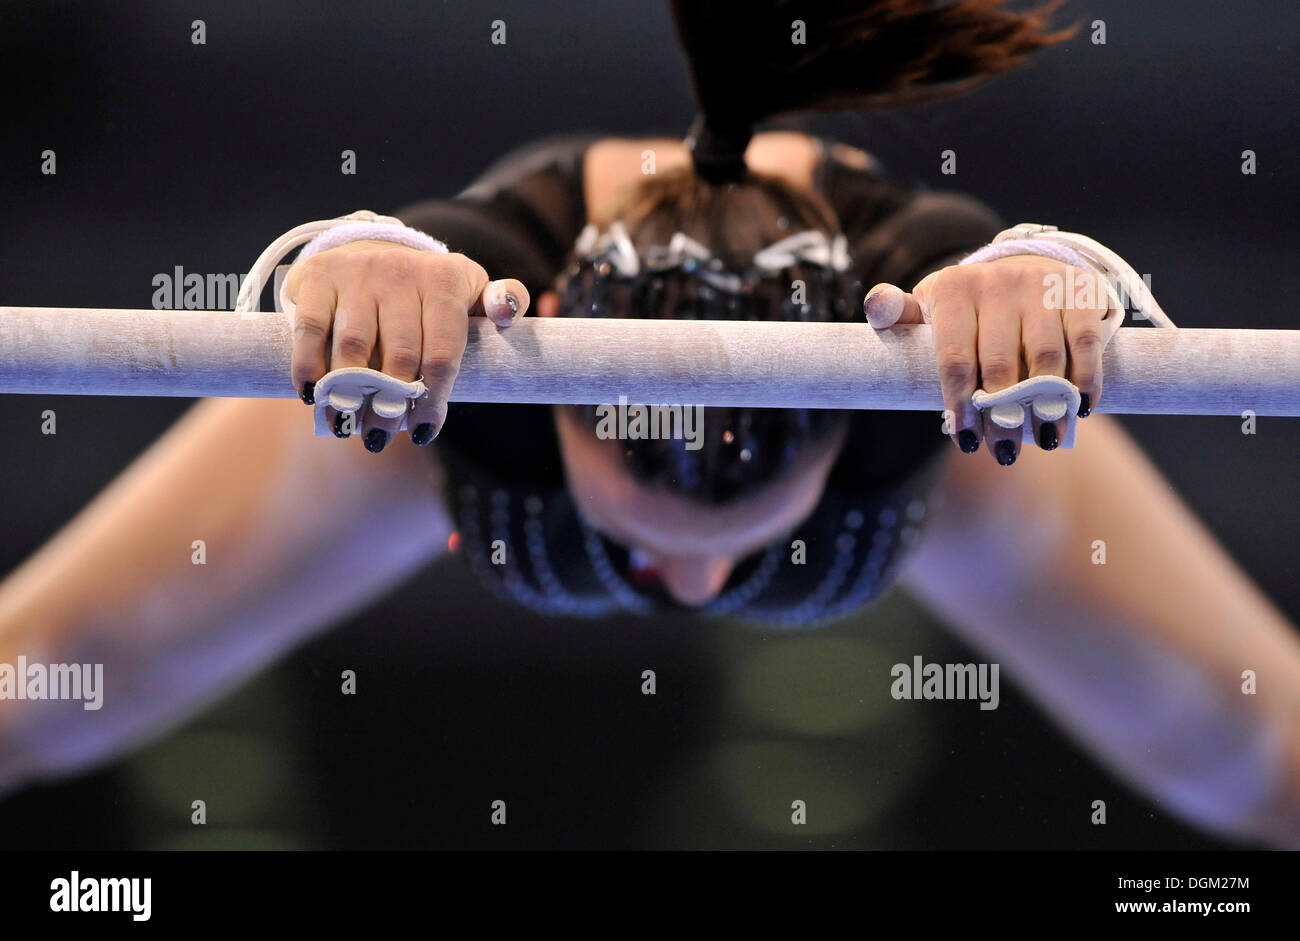 Detail, gymnast with hand protection for the high bar and uneven bars, Marta Pihan-Kulesza, Poland Stock Photo